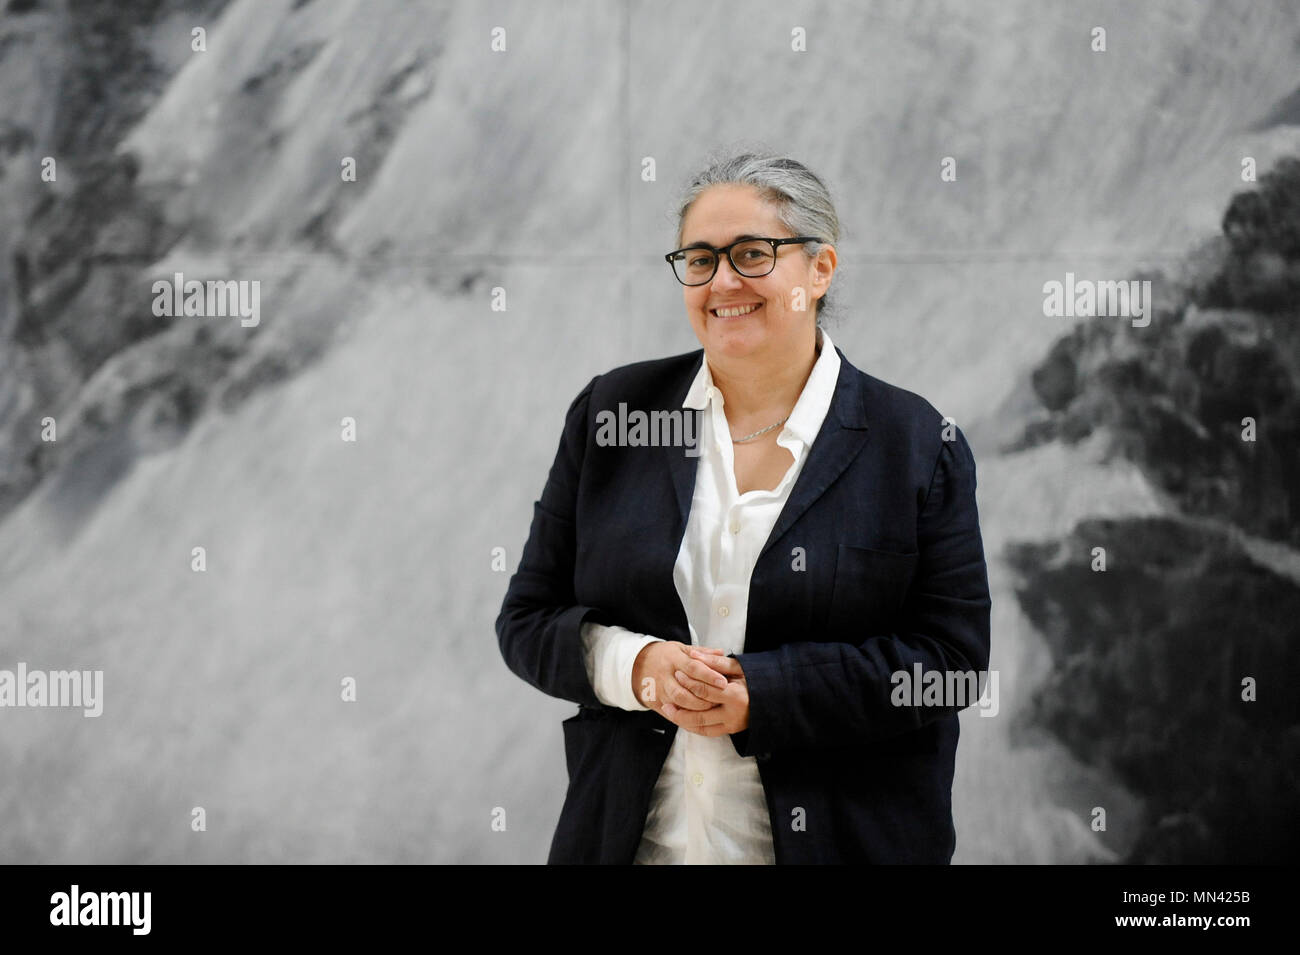 """London, UK.  14 May 2018. Tacita Dean, artist, poses with her work """"The Montafon Letter"""", 2017, in the new Gabrielle Jungels-Winkler Galleries at a photocall for the opening of the new Royal Academy of Arts (RA) in Piccadilly.  As part of the celebrations for its 250th anniversary year, redevelopment has seen the RA's two buildings, 6 Burlington Gardens and Burlington House, united into one extended campus and art space extending from Piccadilly to Mayfair. Credit: Stephen Chung/Alamy Live News Stock Photo"""